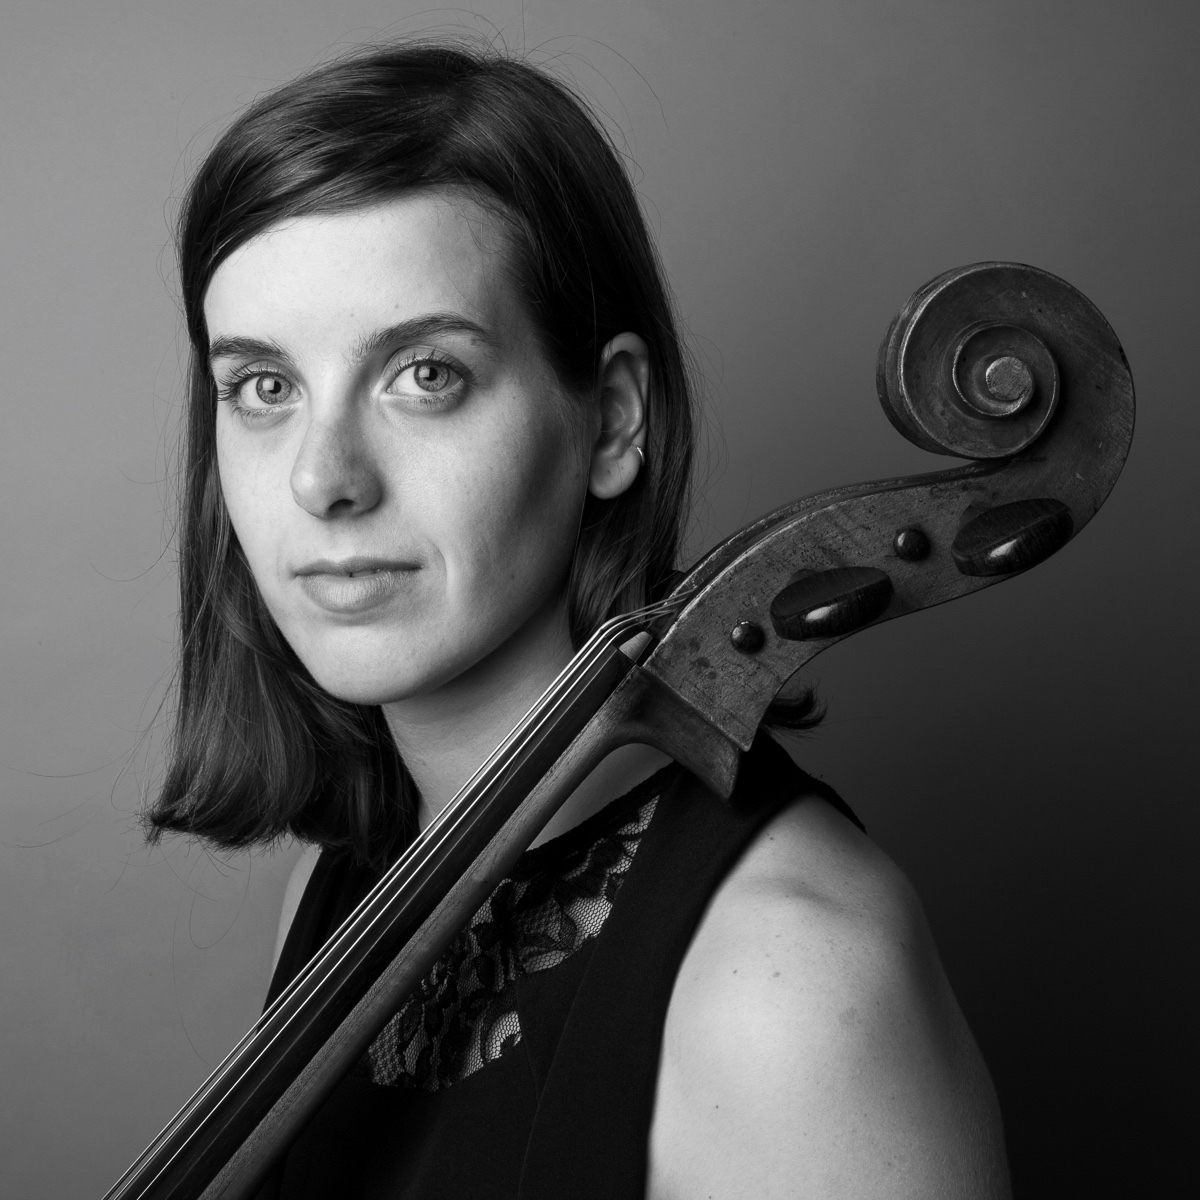 Emily Kennedy  is a cellist, improviser, composer and collaborator based in Fredericton, New Brunswick. She is a graduate of the performance program at the University of Ottawa and Wilfrid Laurier University. Passionate about new music, Emily recently took part in the Britten-Pears Composition, Alternative Performance and Performance Art program in Aldeburgh, UK, performs in electronic improv trio Terre Wa, and works with guitarist and improviser Joel LeBlanc. This past year, Emily was fortunate to be the Emerging Musician in Residence at the University of New Brunswick. She frequently performs with guitarist Steven Peacock, the Kalaya String Quartet, Pallmer, Property//, Symphony New Brunswick, and as a part of UNB's musicUNB Performance Series. Emily is active in genre-crossing projects, collaborating with poets, textile artists, and dancers. Emily teaches cello at Mount Allison University, and maintains a full private teaching studio in Fredericton.